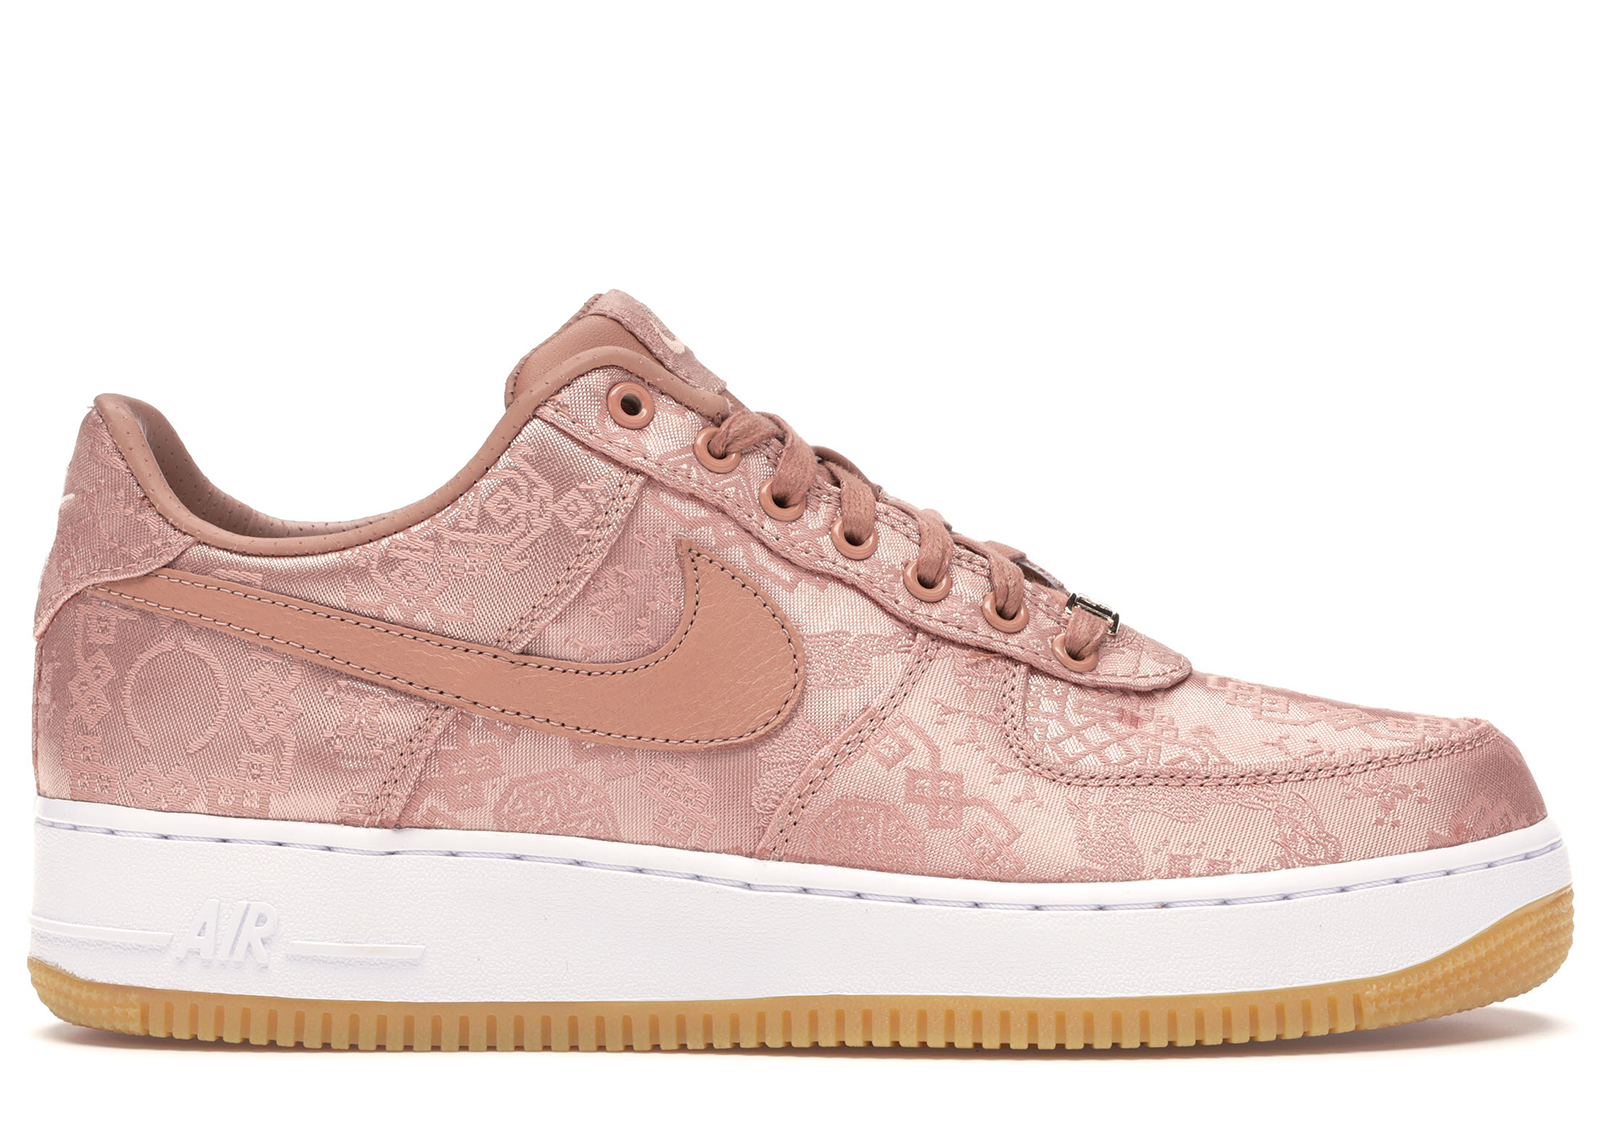 Nike Air Force 1 Low Clot Rose Gold Silk (Regular Box)